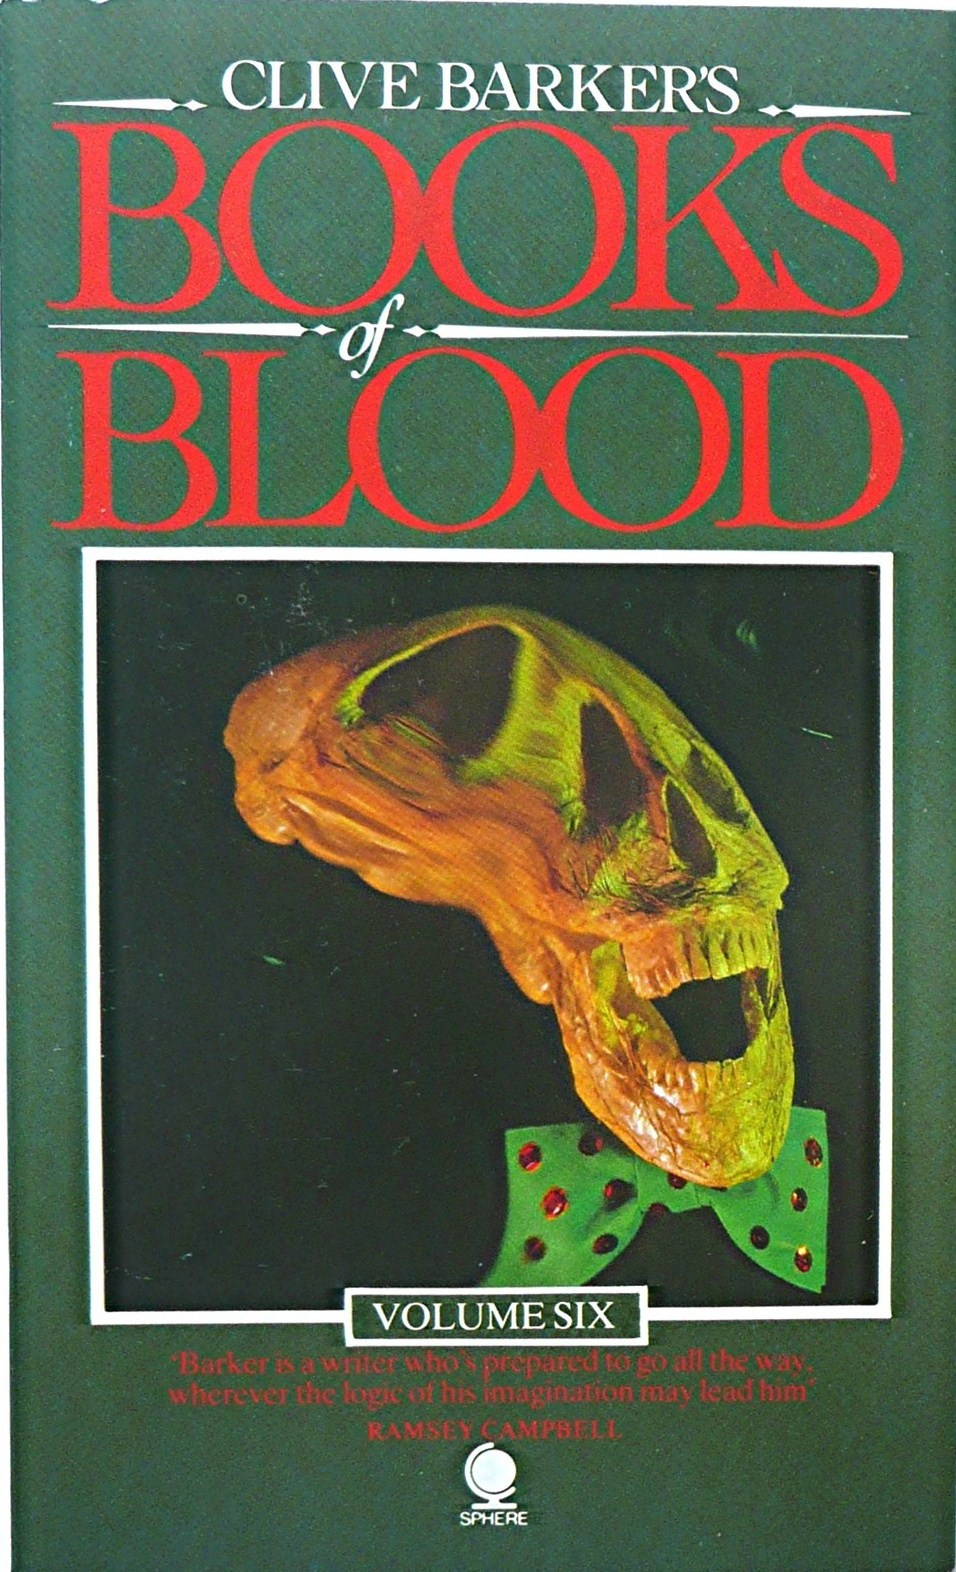 blood clive books barker vol volume 1985 sphere too much fiction horror lost living